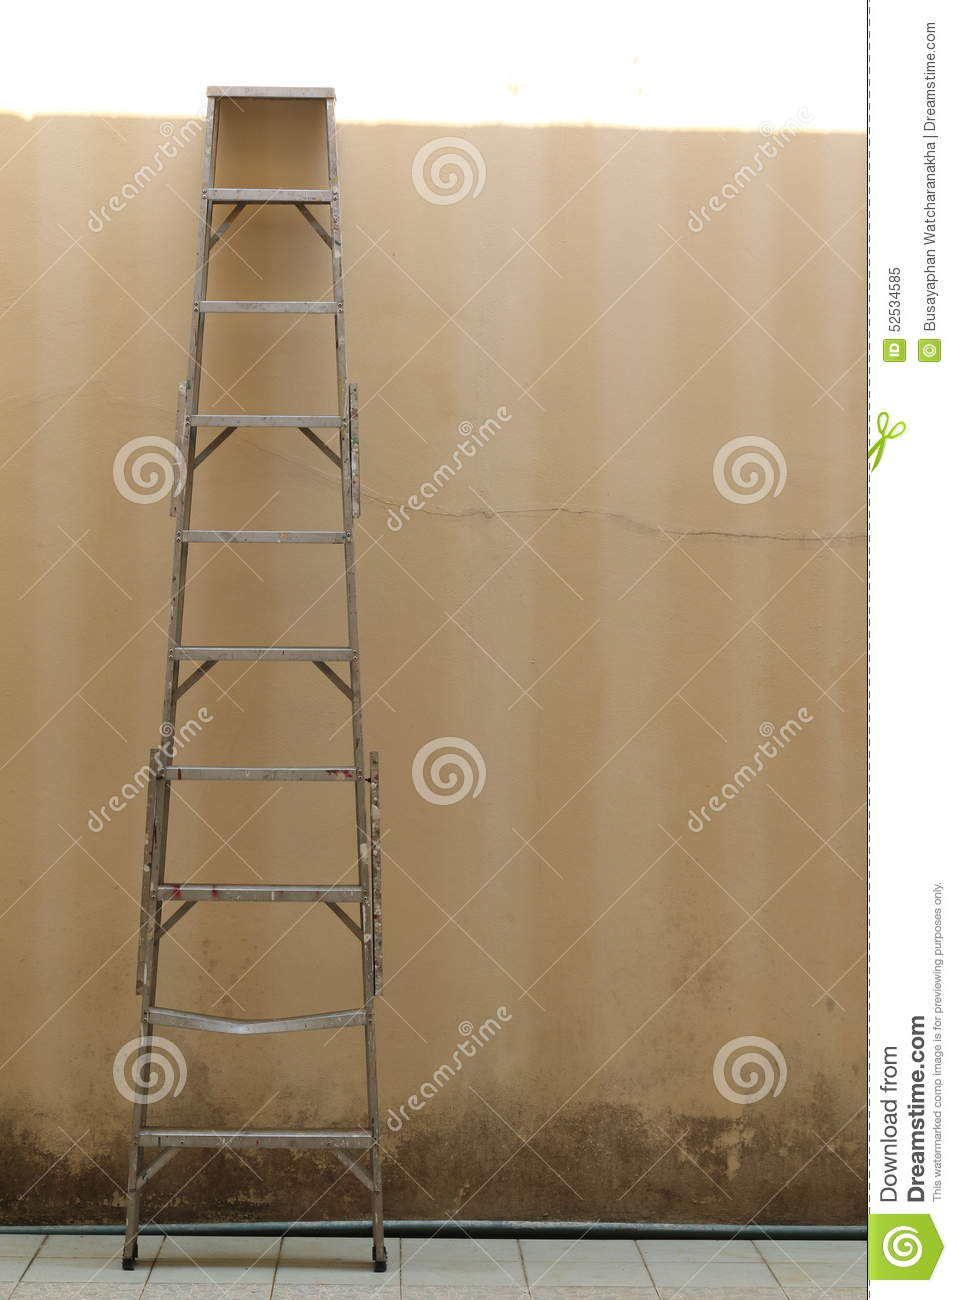 ladder on wall - photo #25